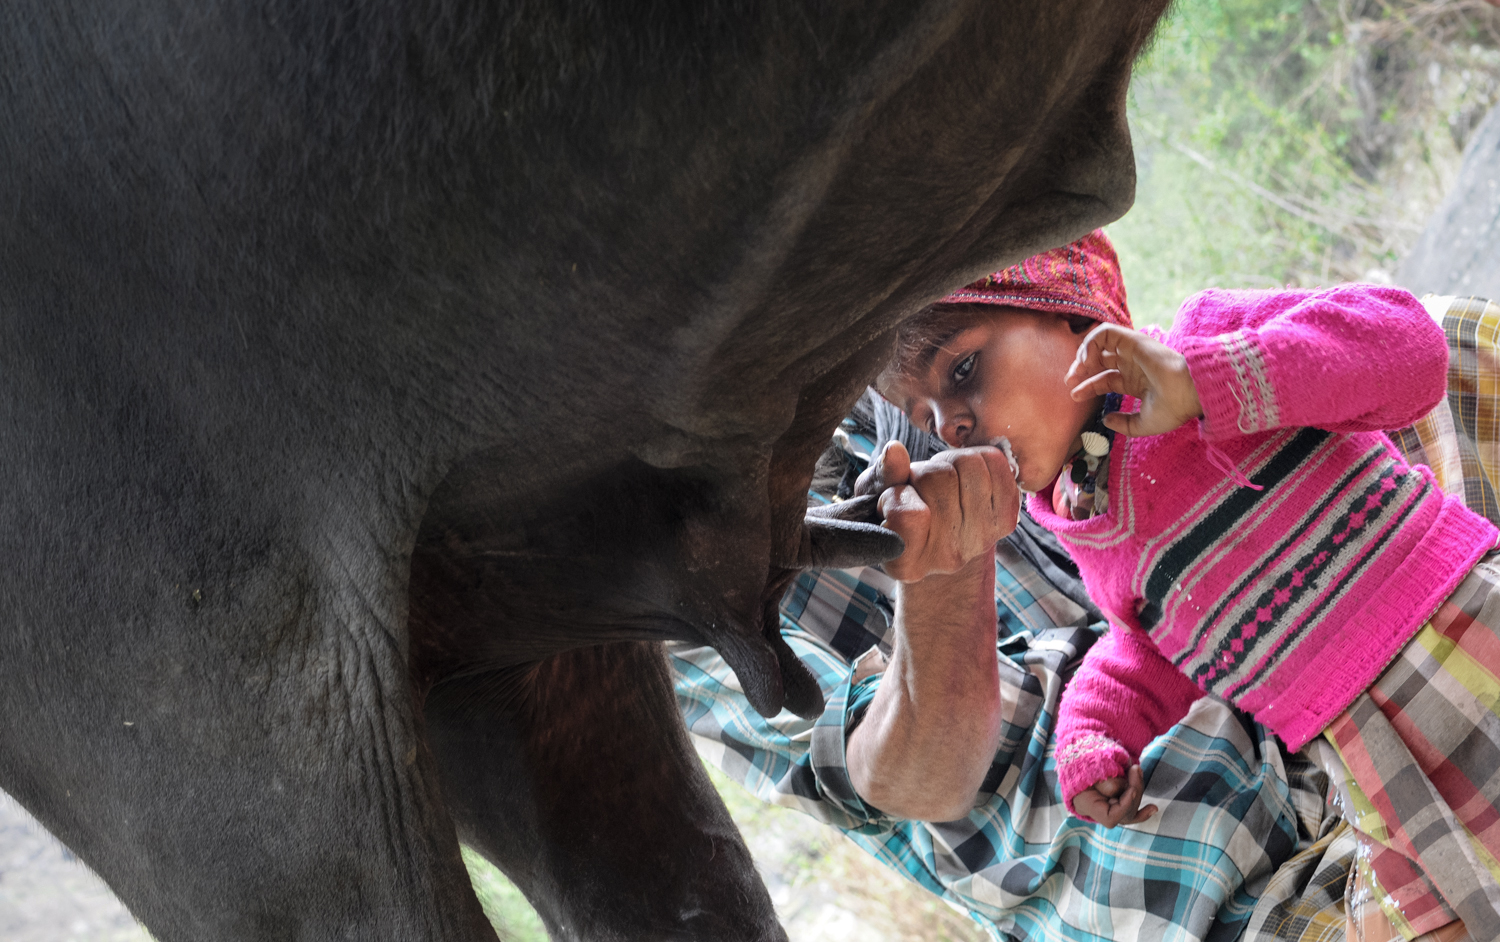 Four-year-old Karim gets his milk straight from the source.